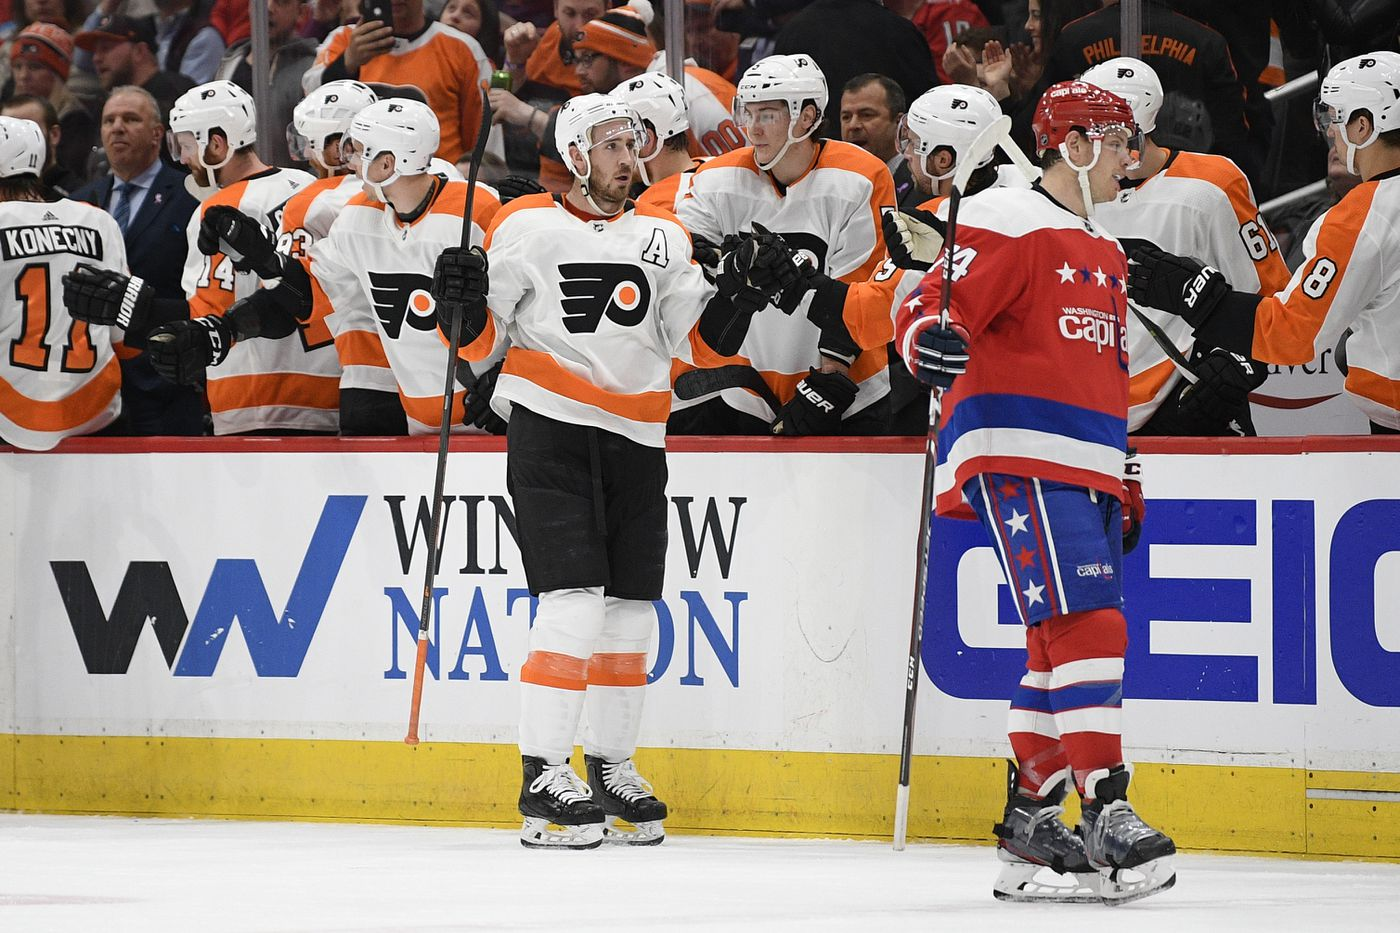 Kevin Hayes celebrates with the Flyers' bench after scoring a goal during the second period.